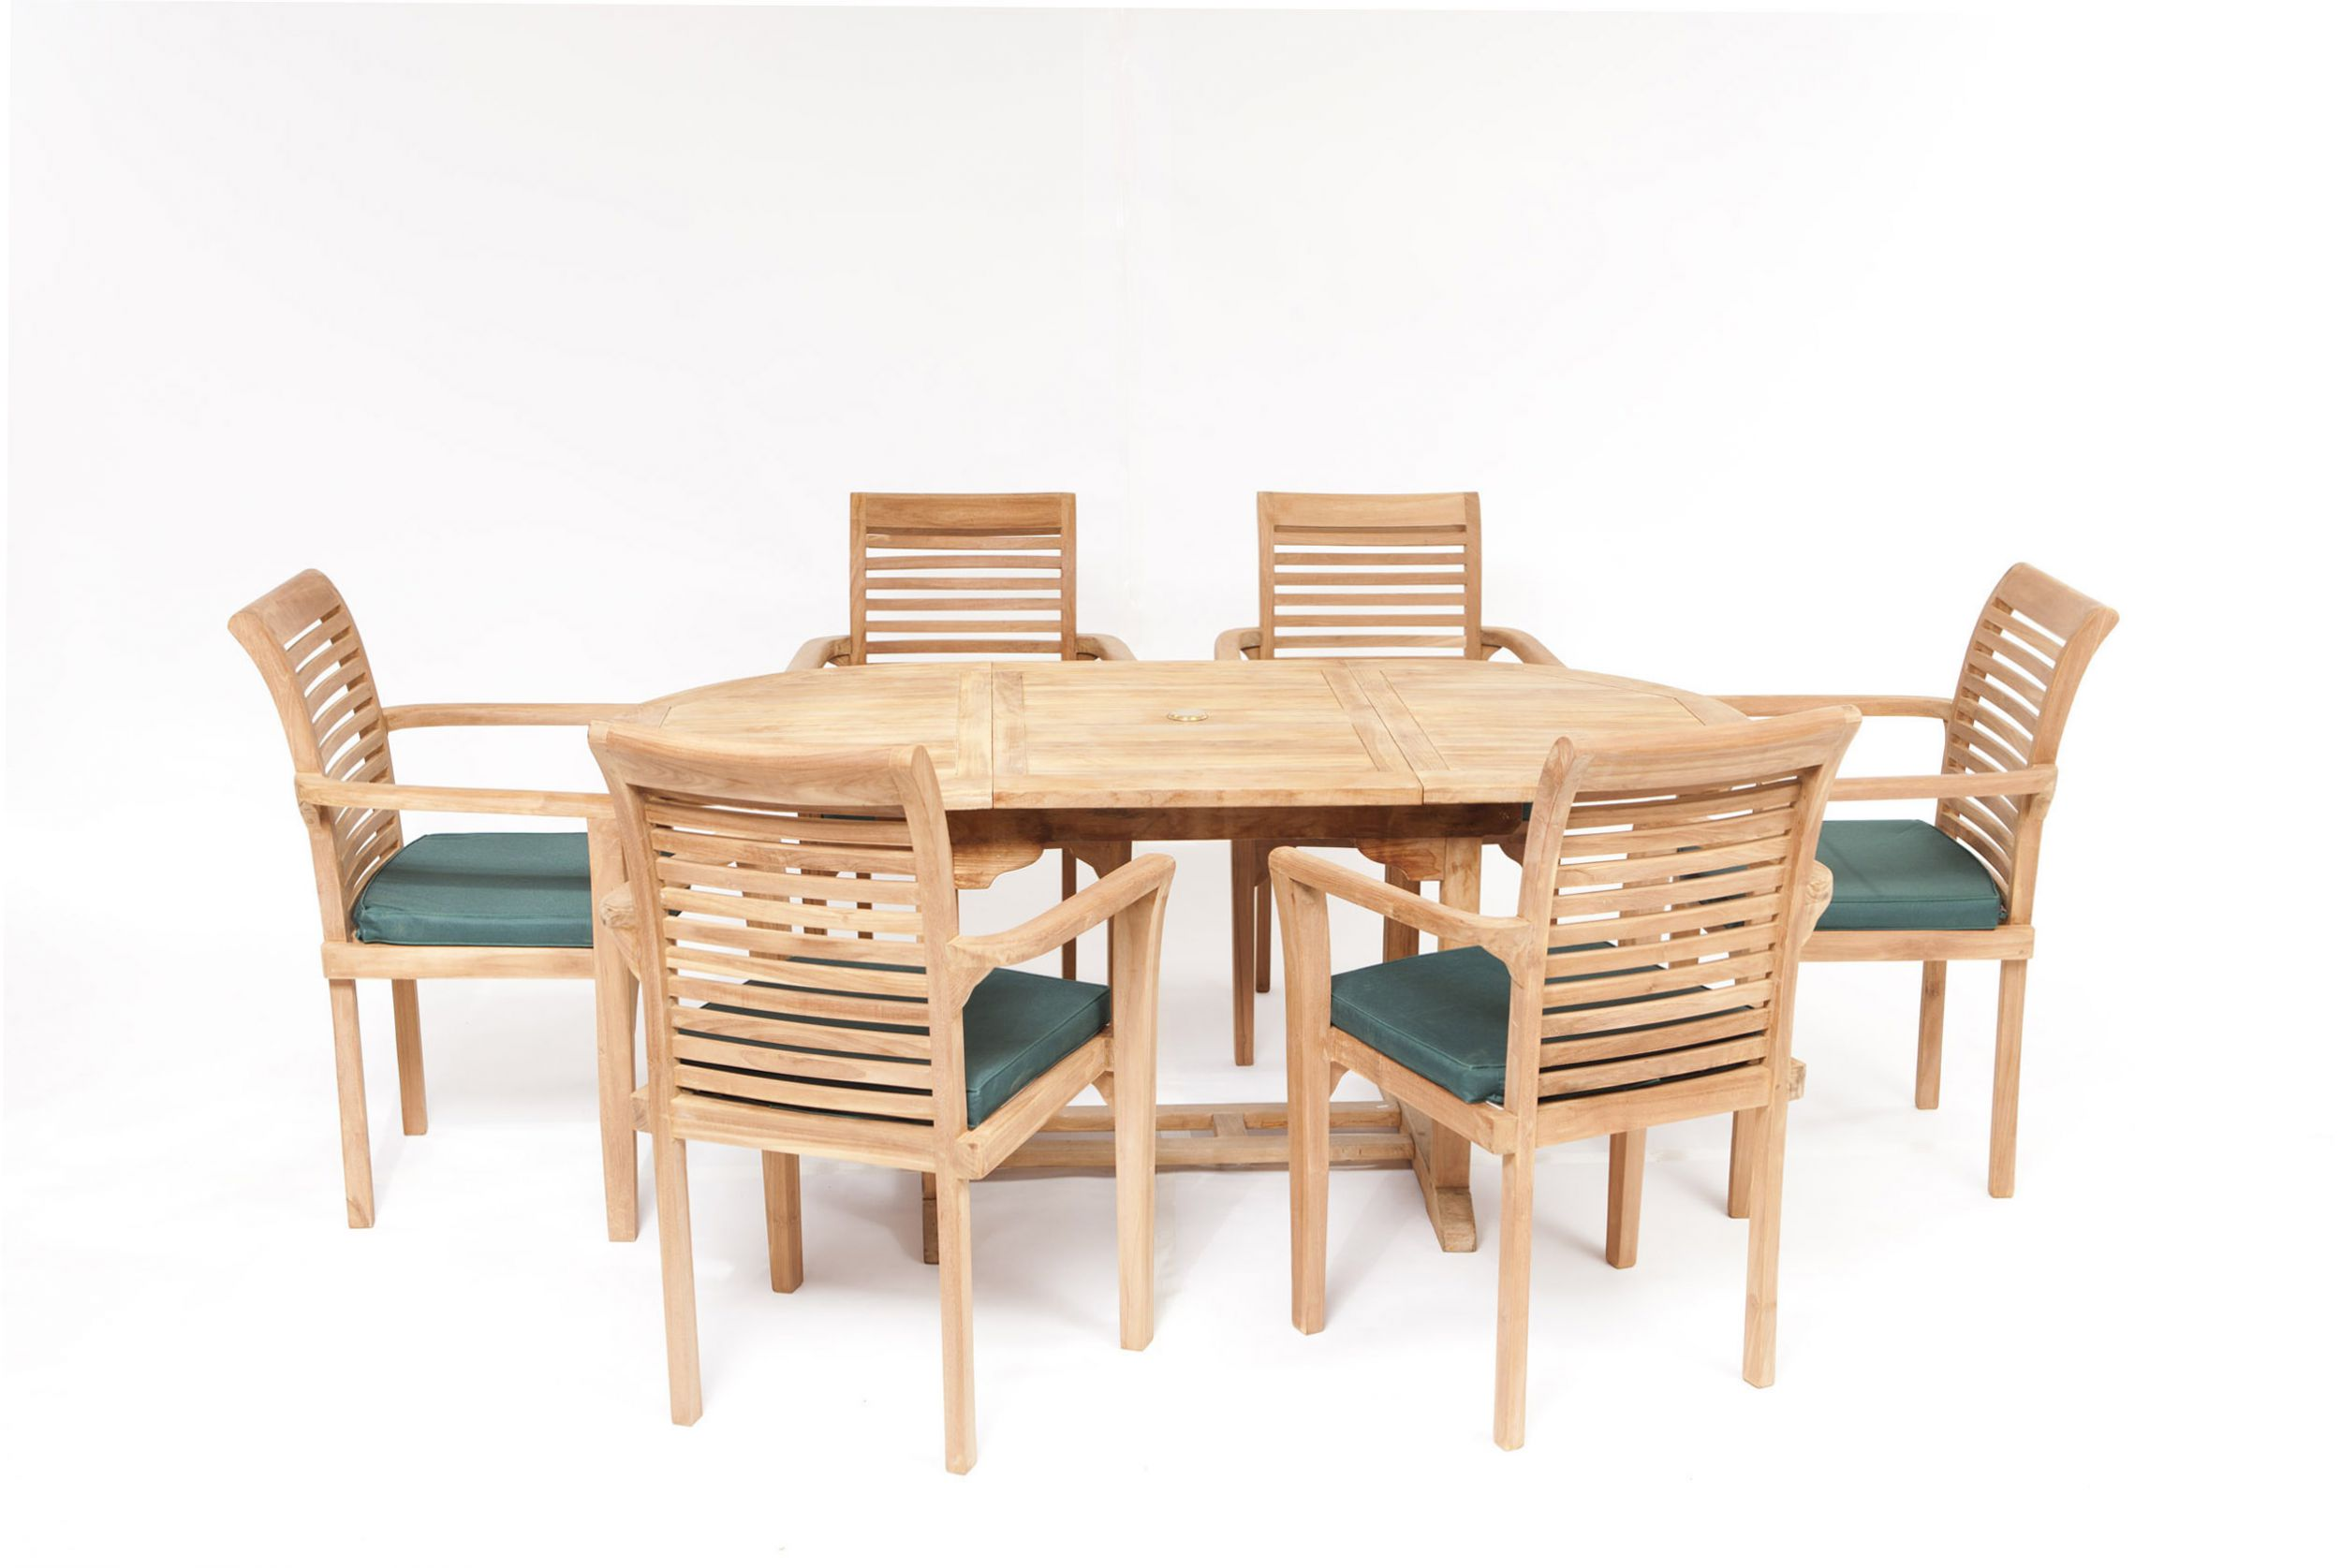 Perfect Garden Furniture 6 Seater Page With Decor S And Design Decorating